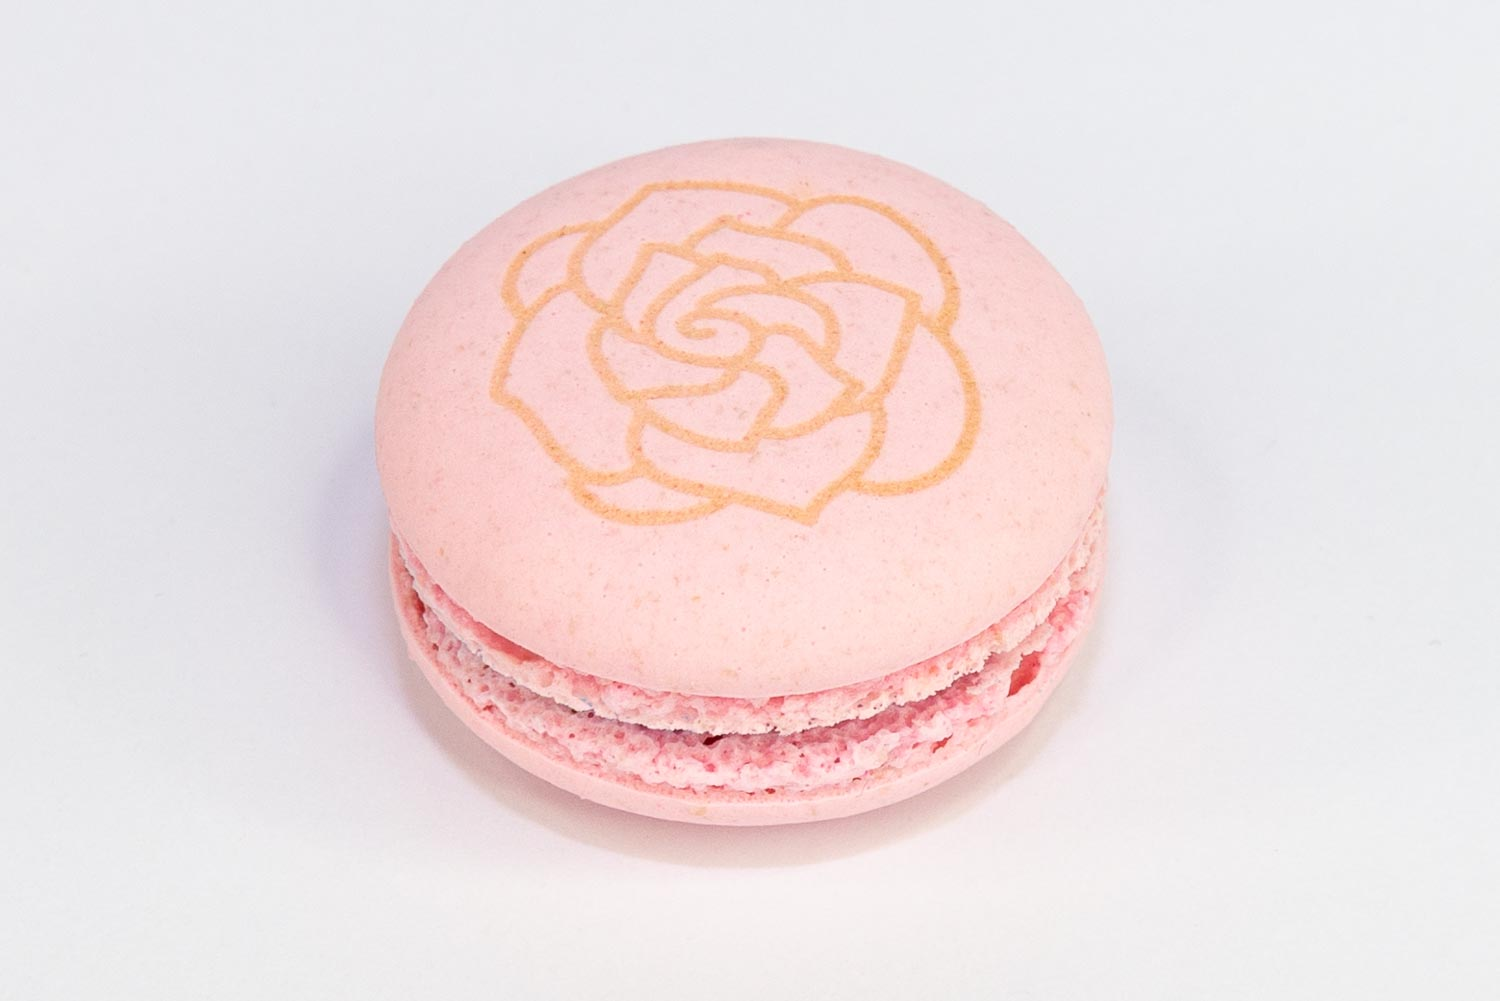 a flower engraved on a macaron